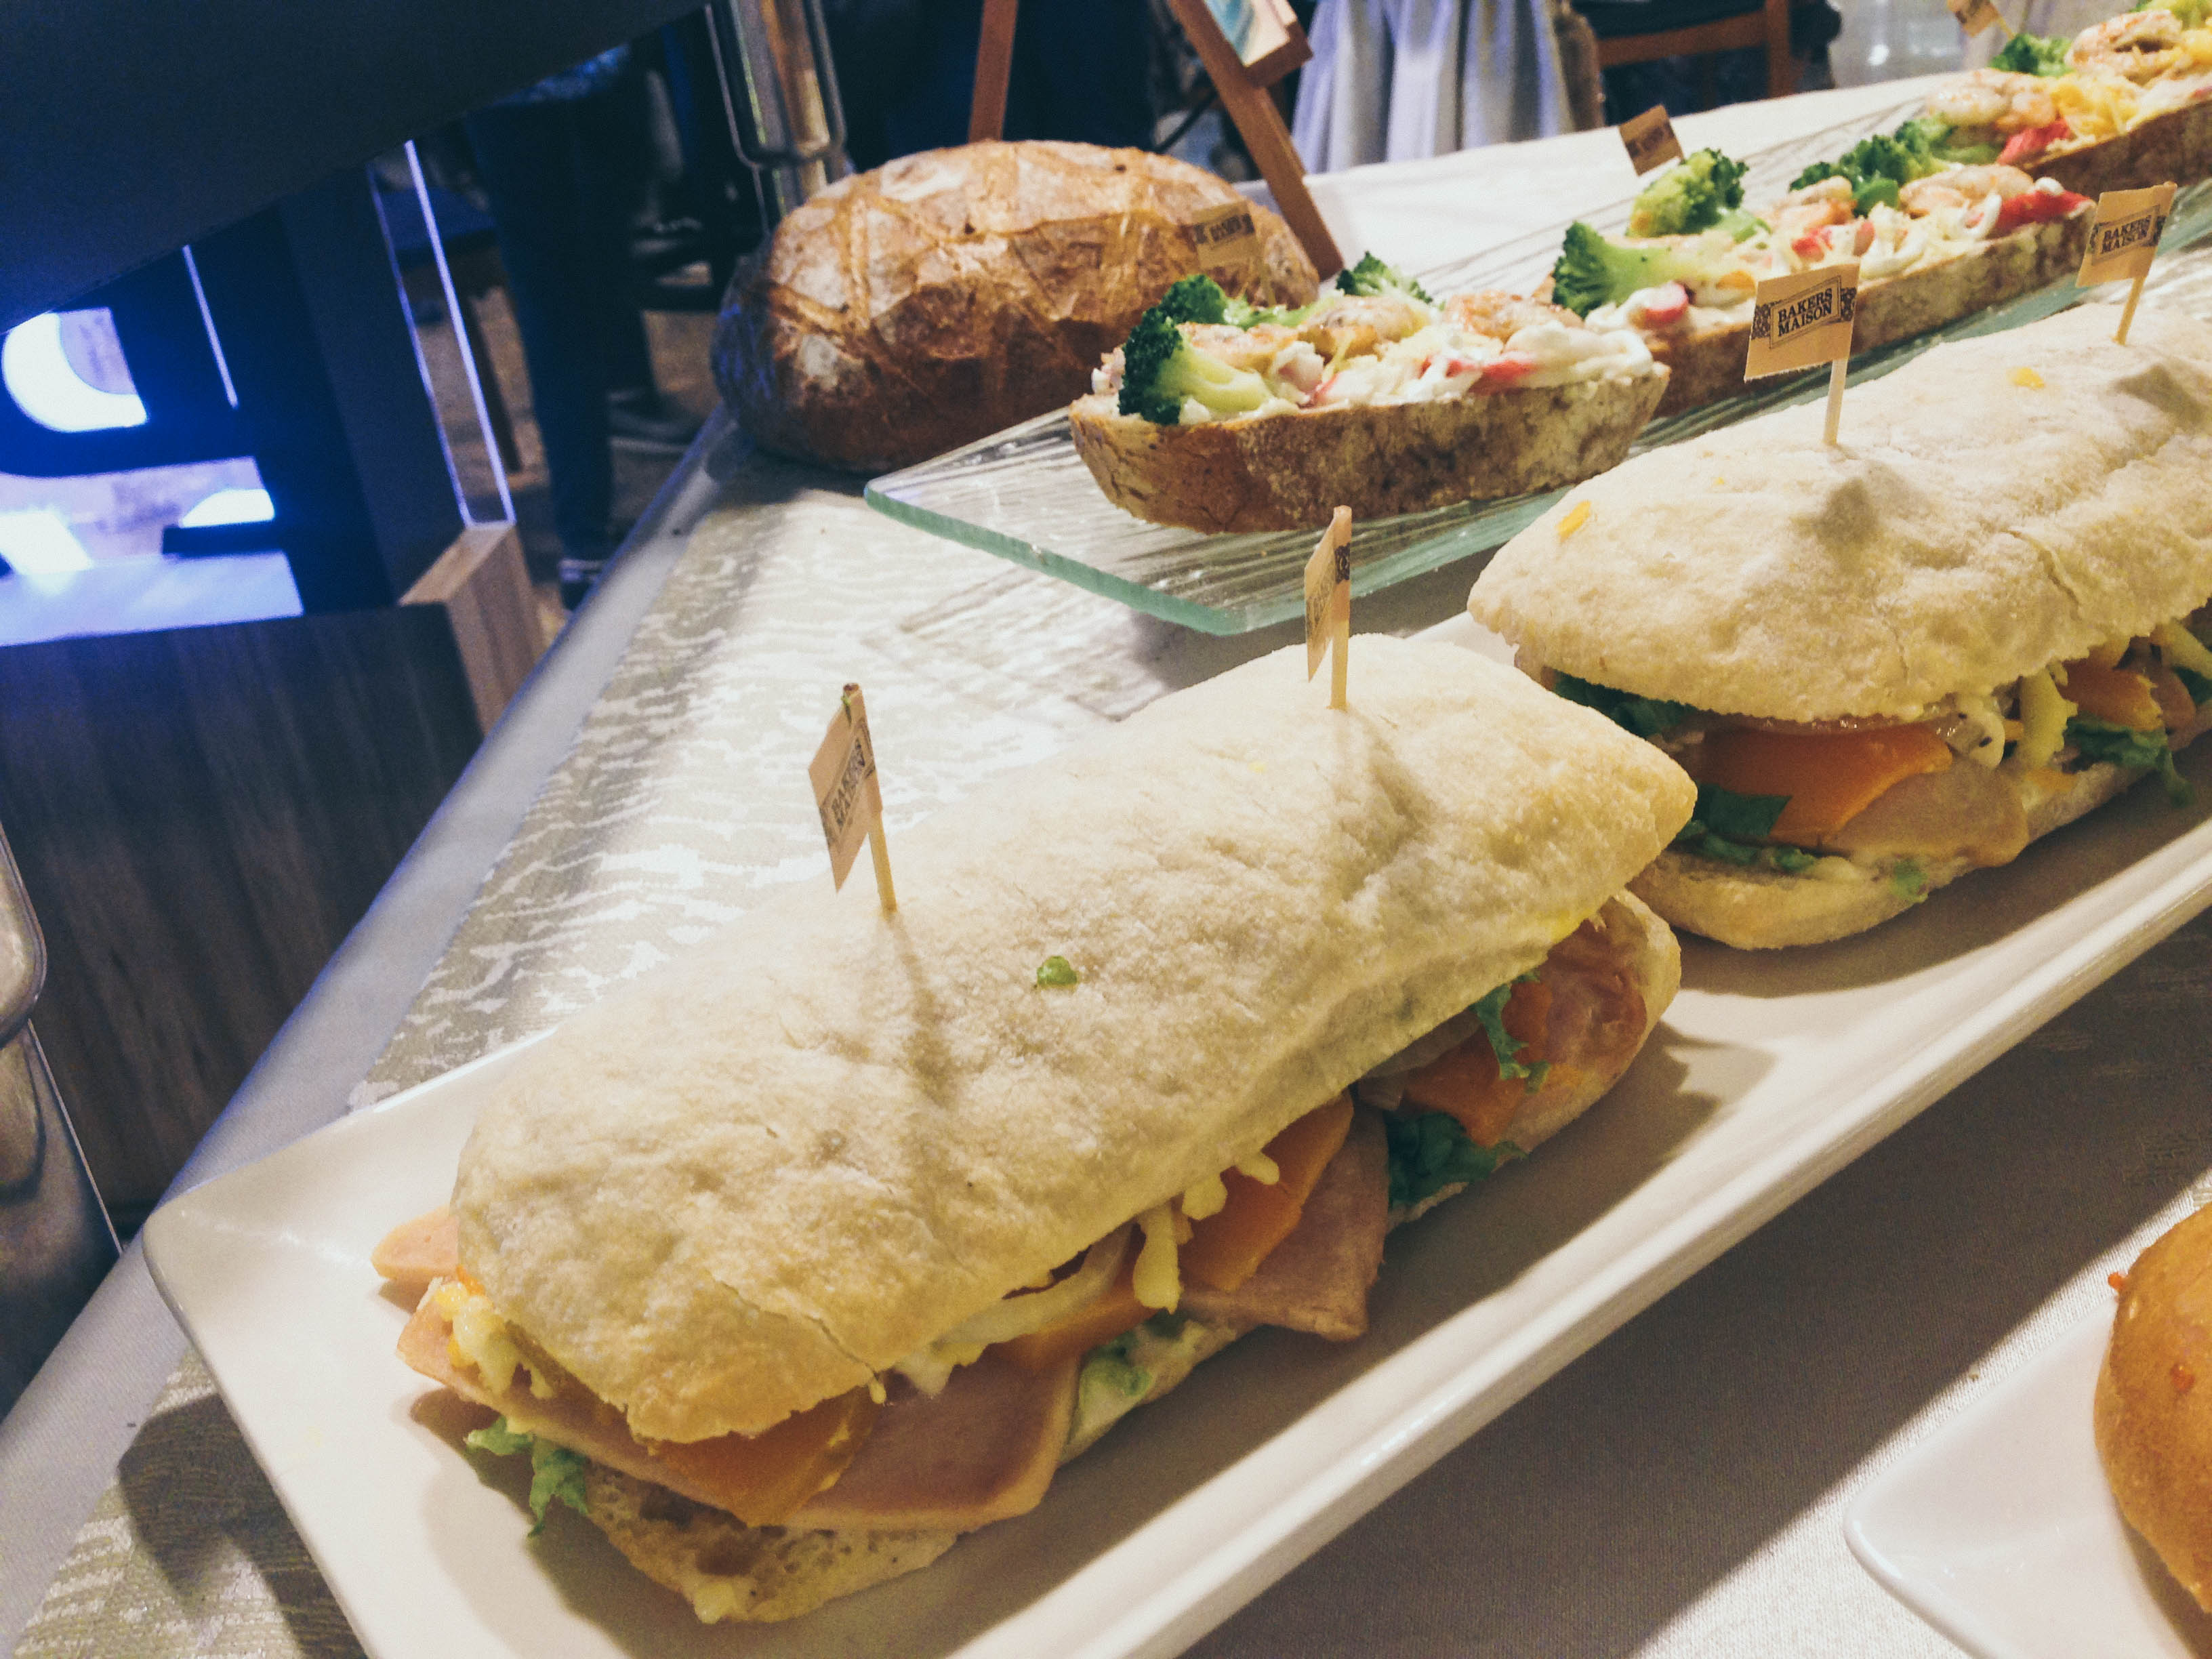 Easy and Yummy Sandwiches from Bakers Maison That You Can Make